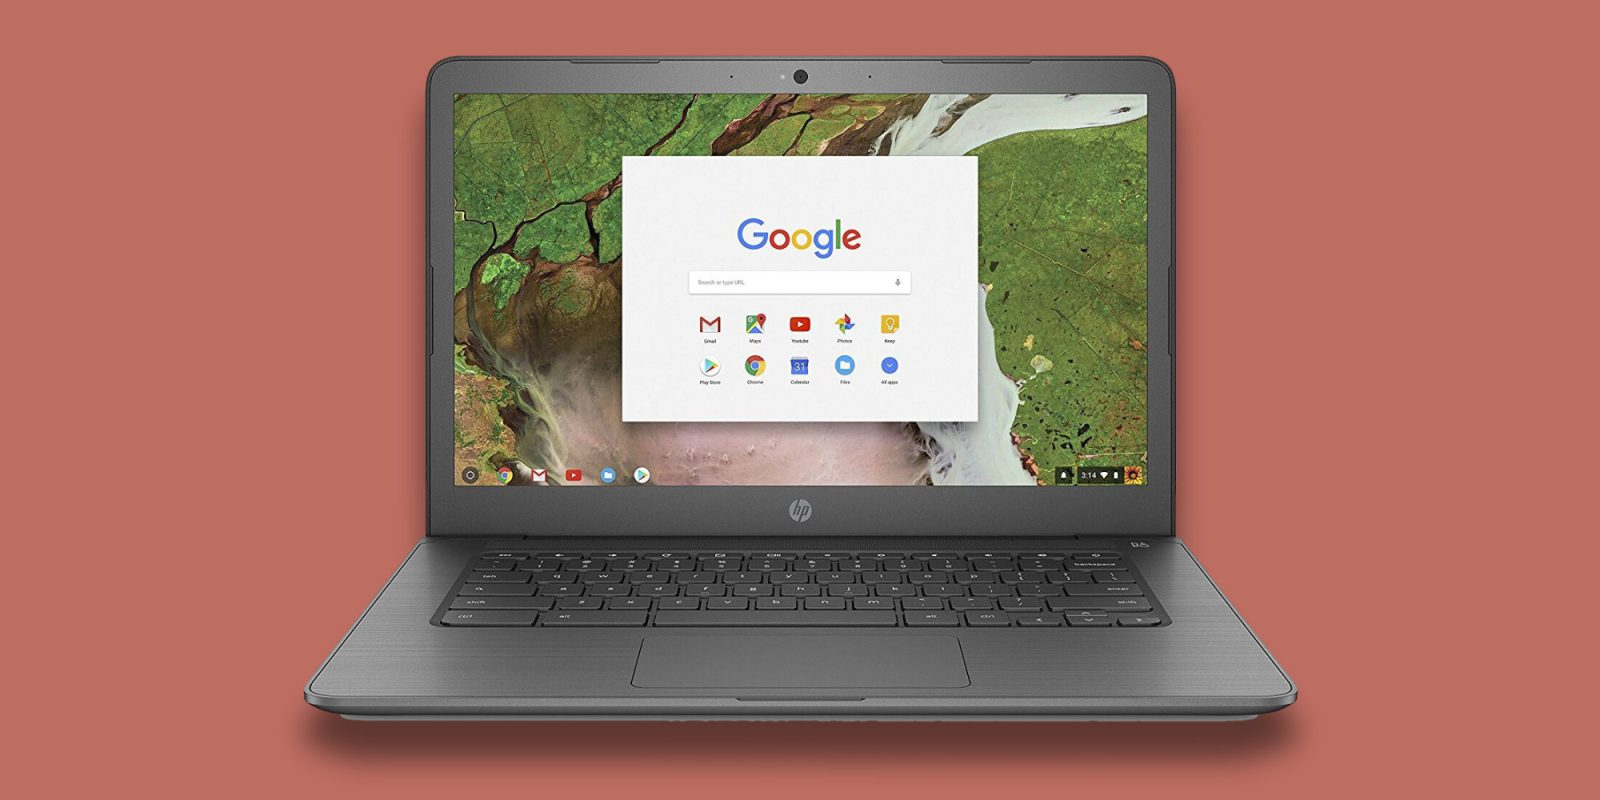 Dip your toe in ChromeOS with HP's 14-inch Chromebook: $166.50 (All-time low)